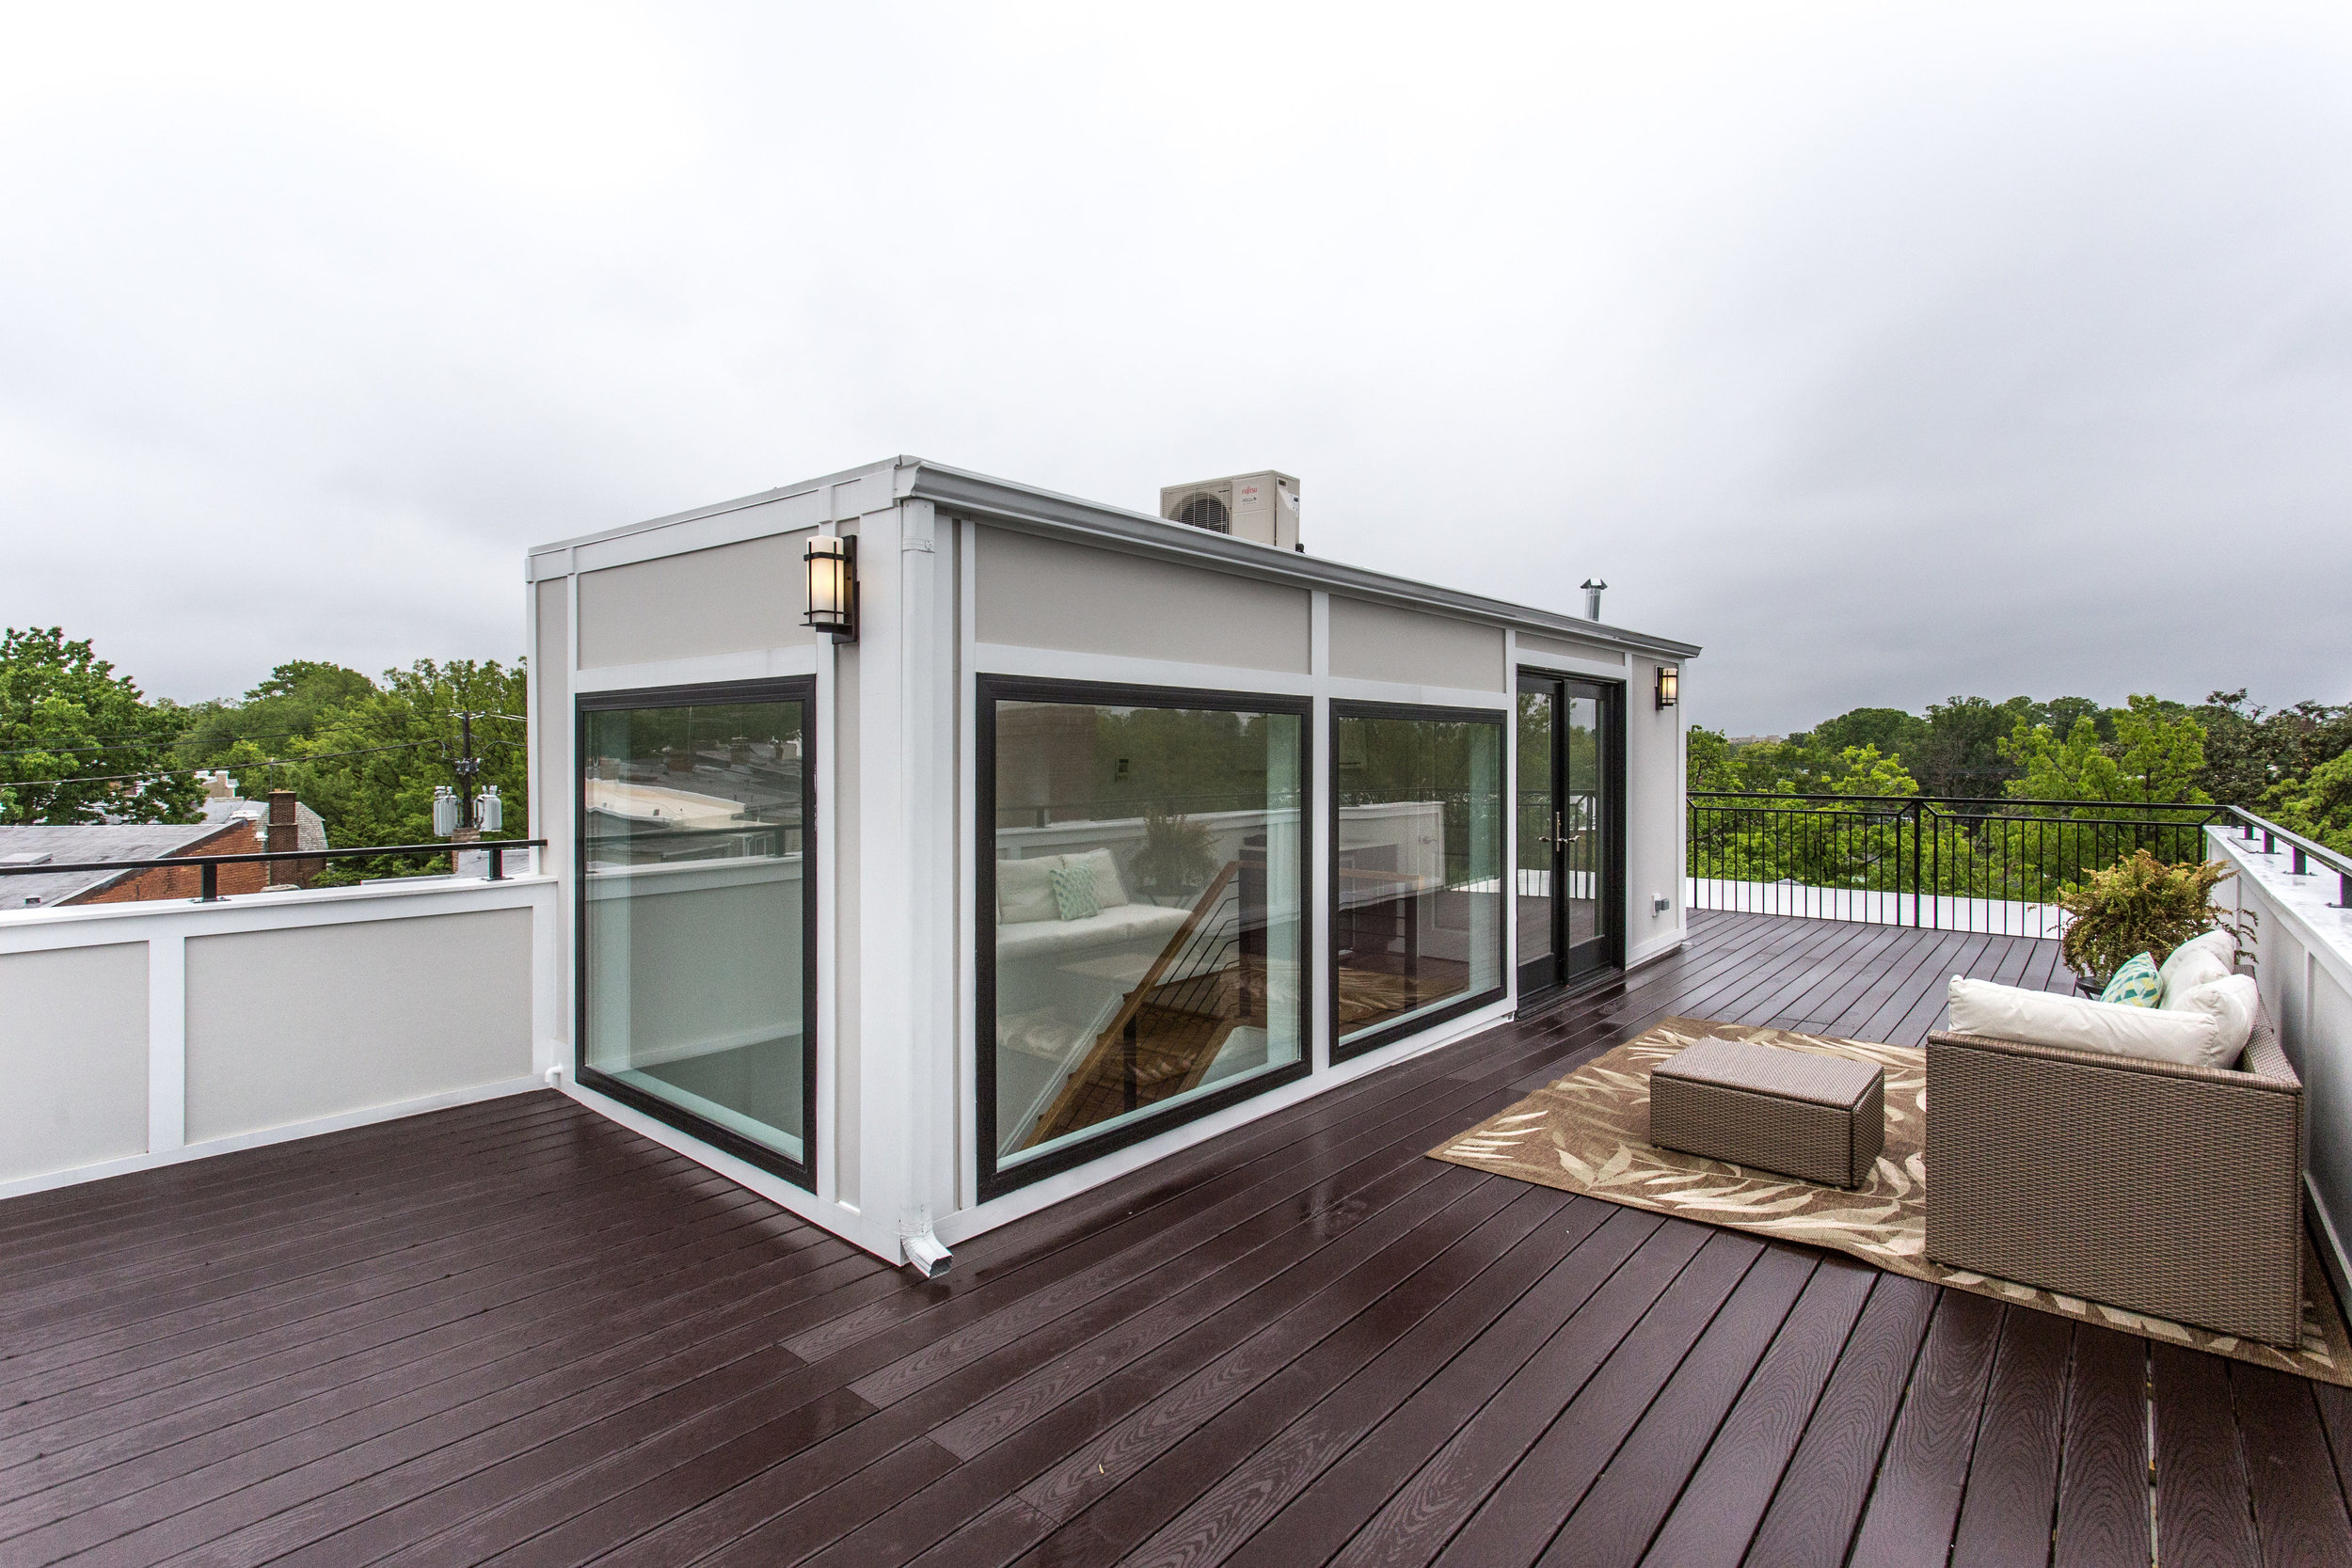 4511 Iowa Ave NW Unit 3-print-066-1-Rooftop Deck-4200x2800-300dpi.jpg